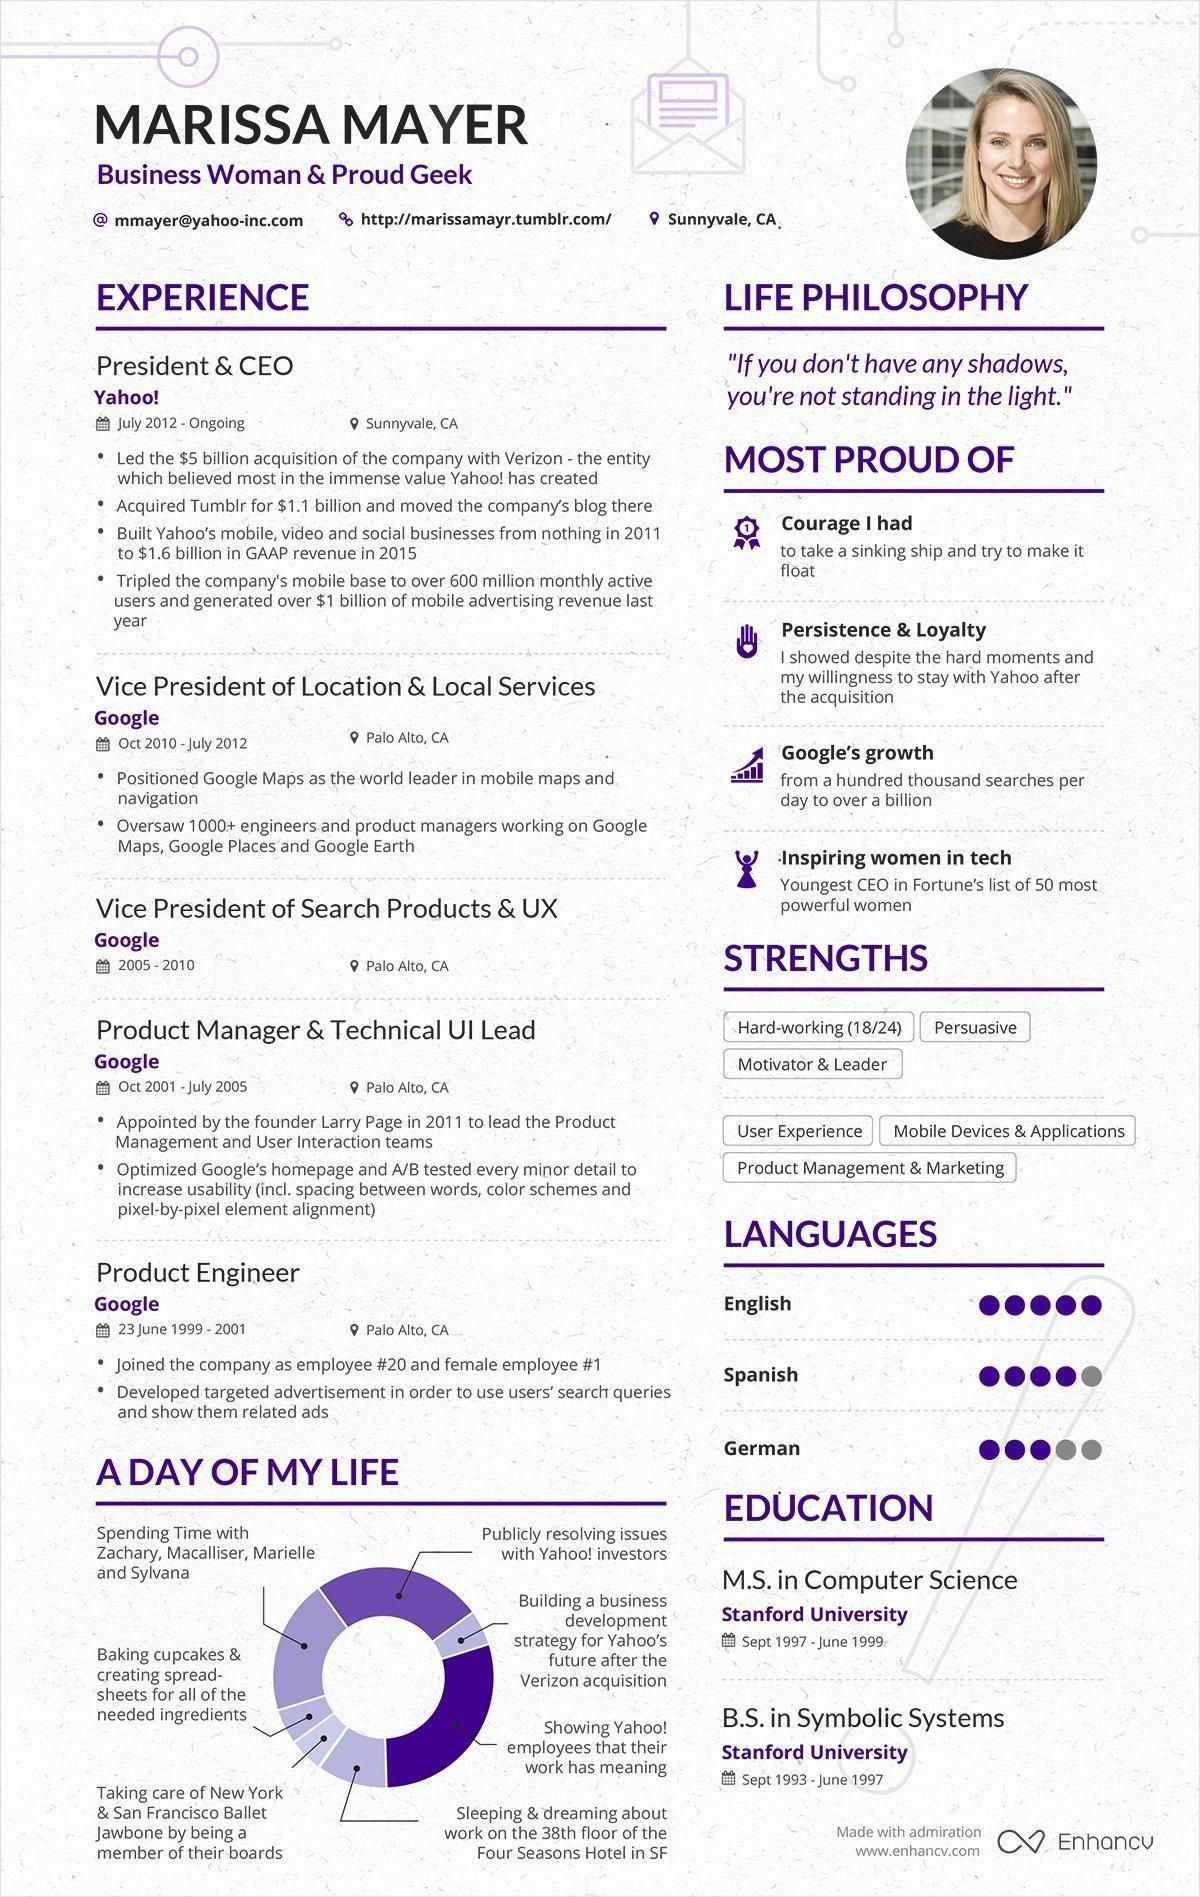 15+ infographic resume ideas for non-creative jobs | free templates